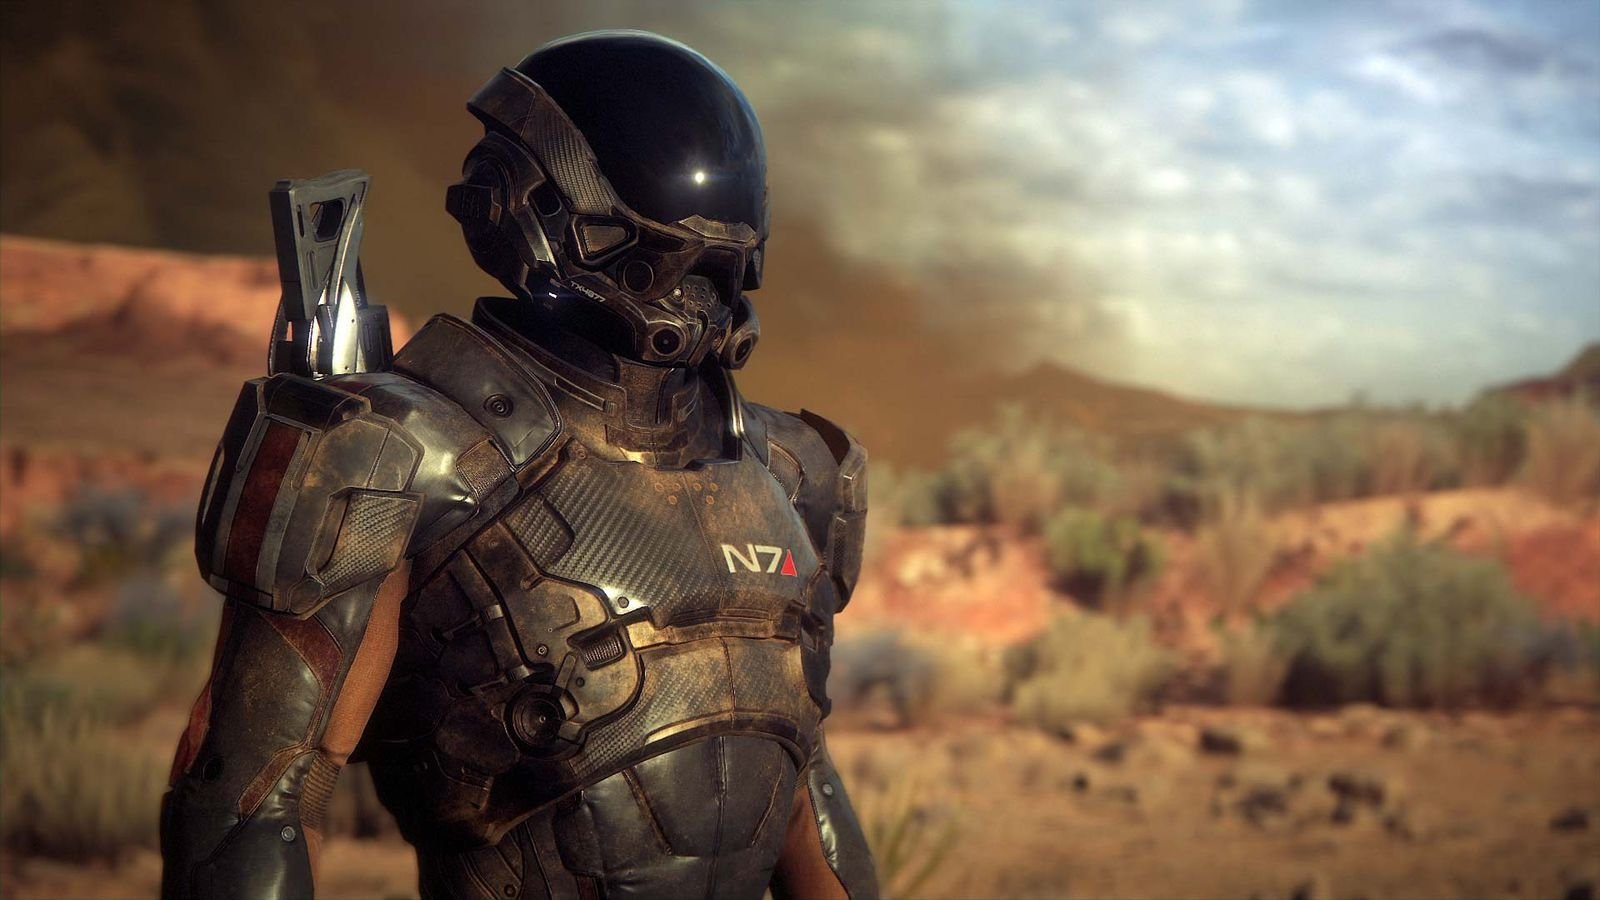 Zelda Mass Effect And Horizon All Struggle With Introducing Their Trans Characters Polygon Andromeda is a very treacherous place. zelda mass effect and horizon all